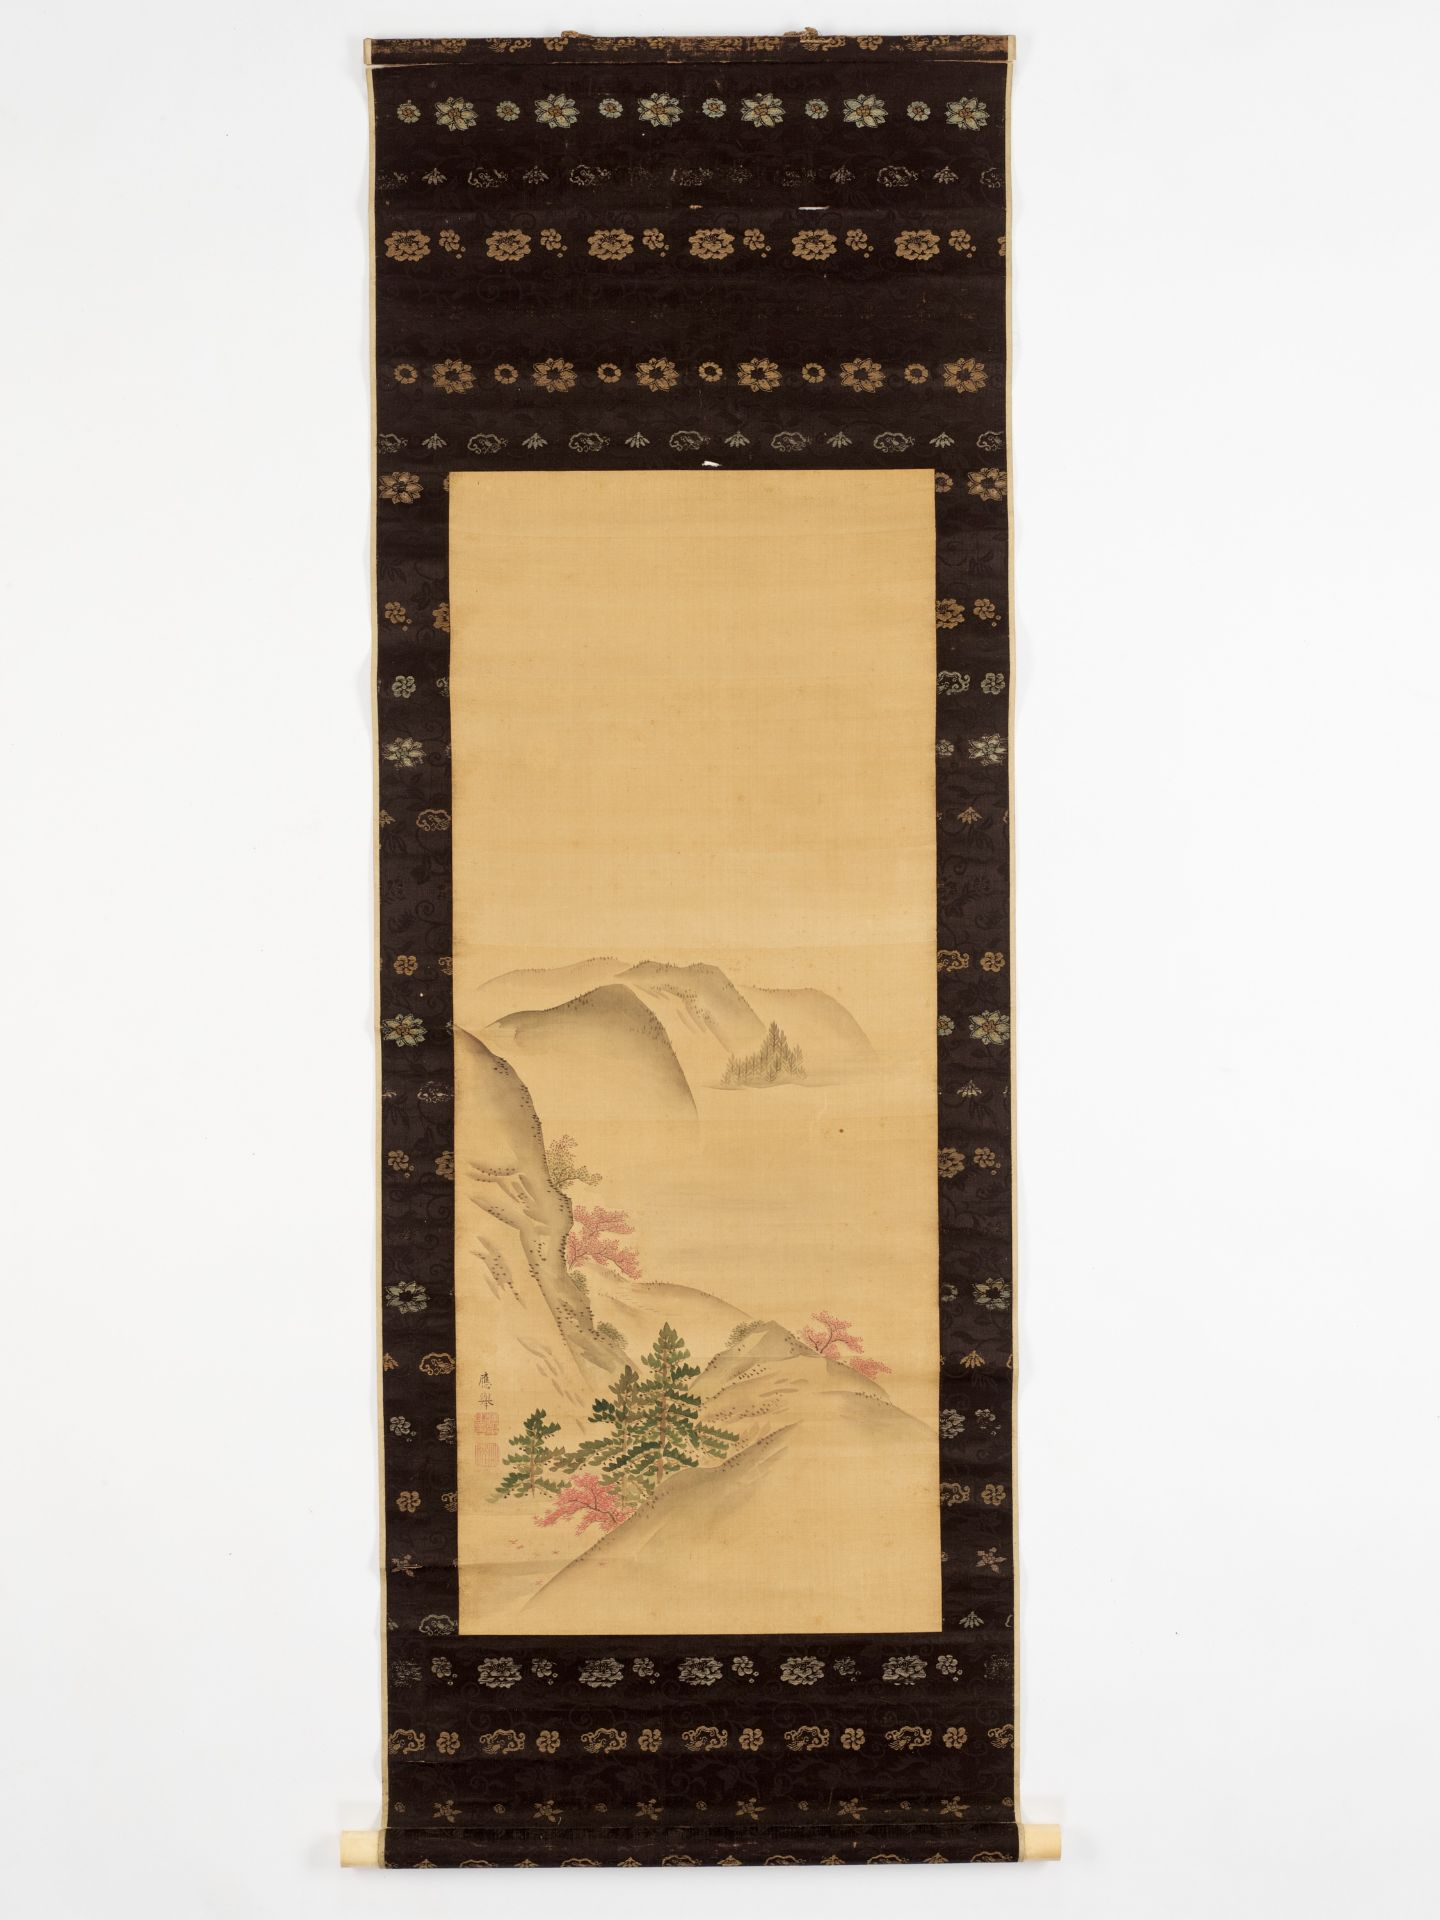 MARUYAMA OKYO: A SCROLL PAINTING OF A HILLY LANDSCAPE - Image 2 of 6